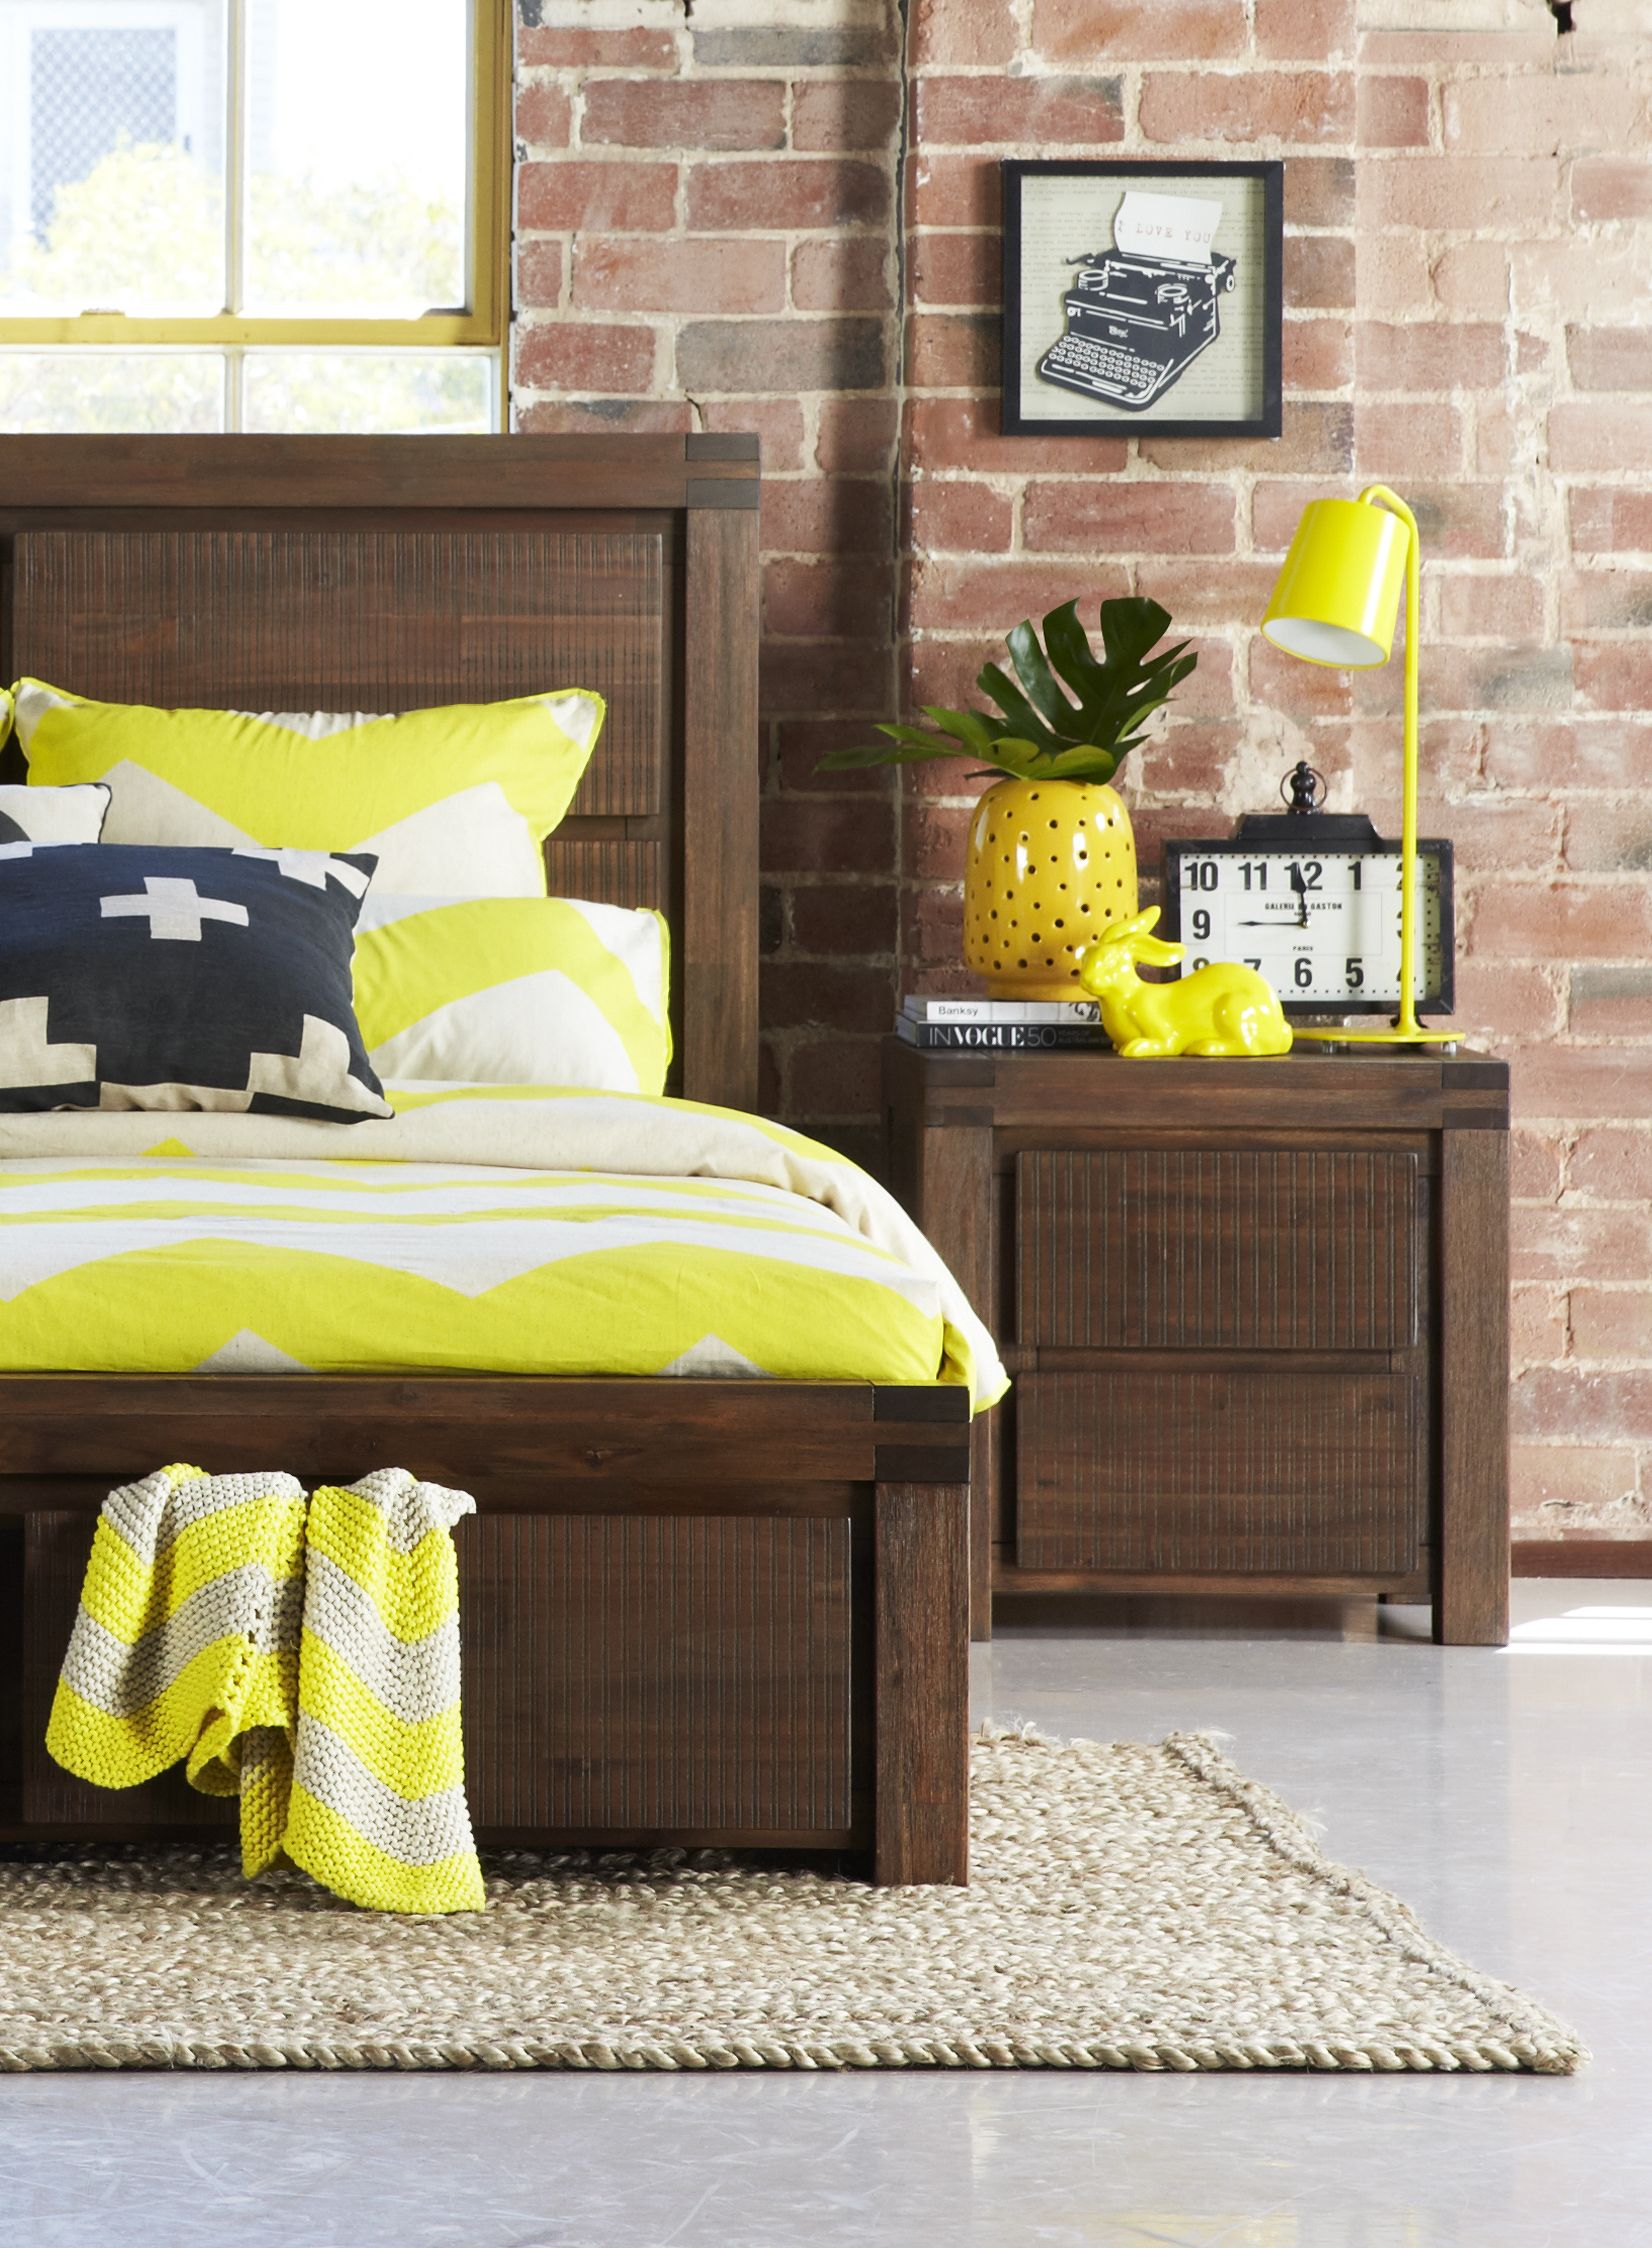 The Cooma Rough Sawn Solid Timber Bedroom Suite With Storage And Bold Classic Lines From Bedshed Bedroom Furniture Beds Bedroom Bedroom Furniture